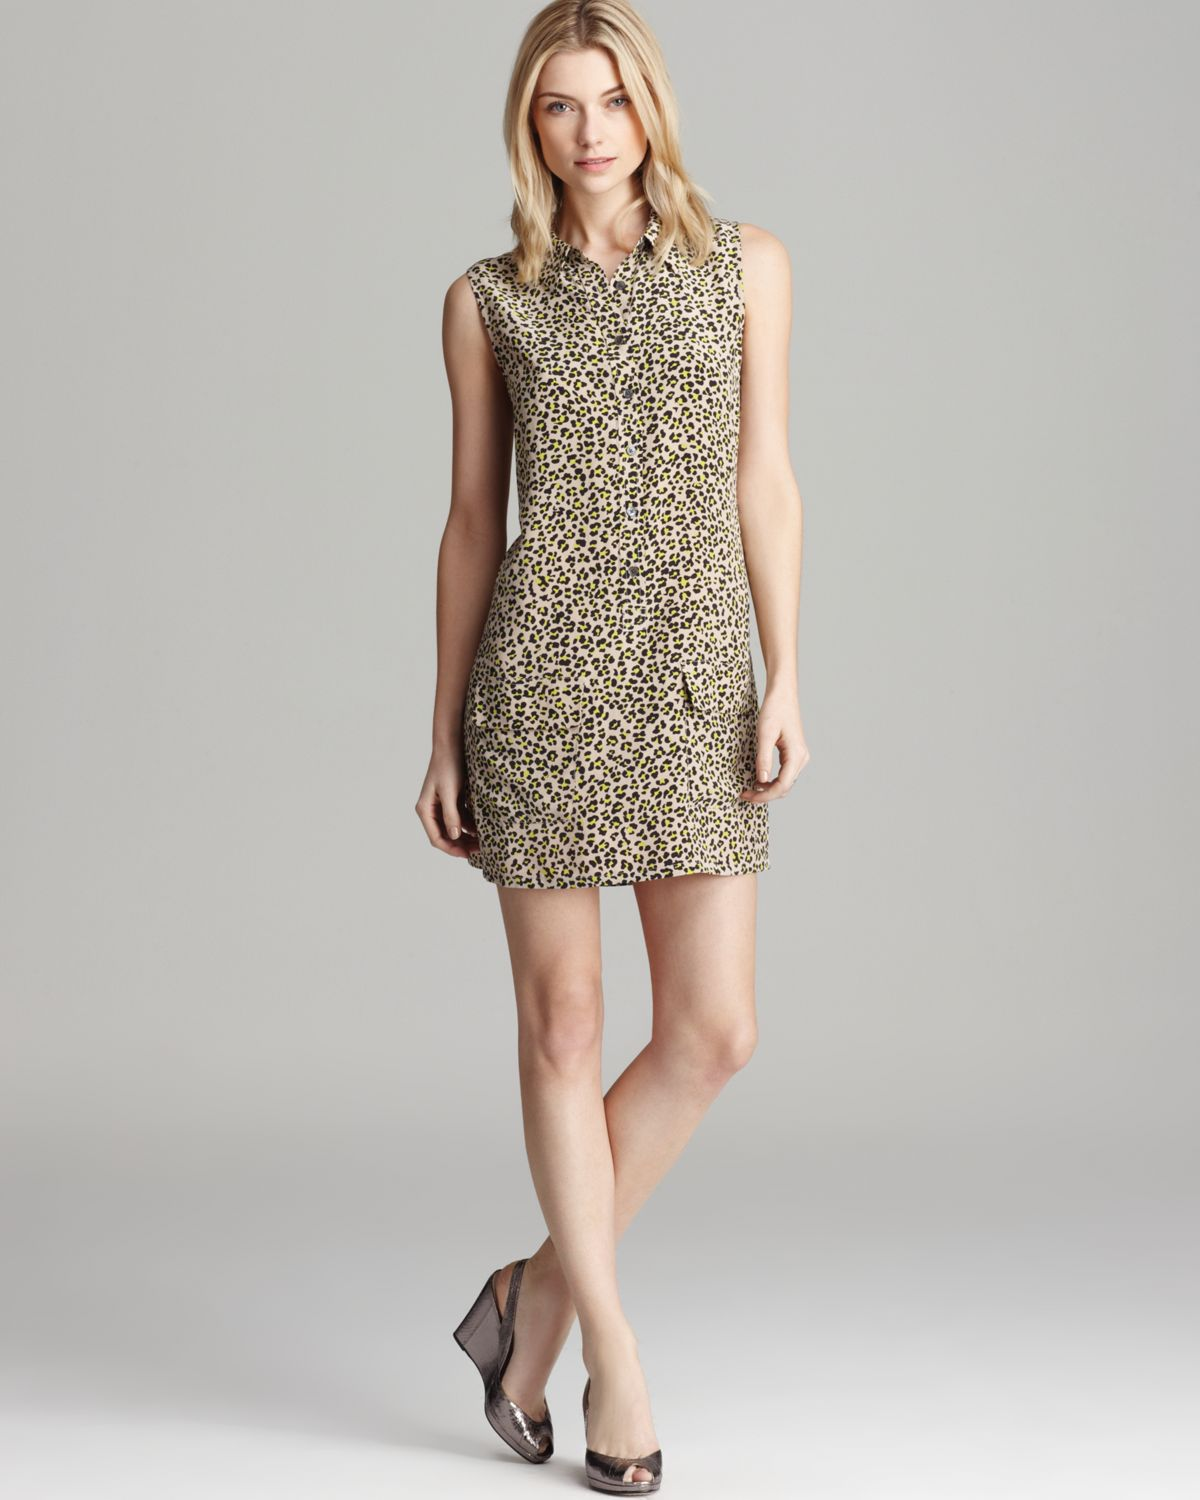 6a73697ed94f0f Lyst - Equipment Leopard Print Dress Sleeveless Lucida in Natural